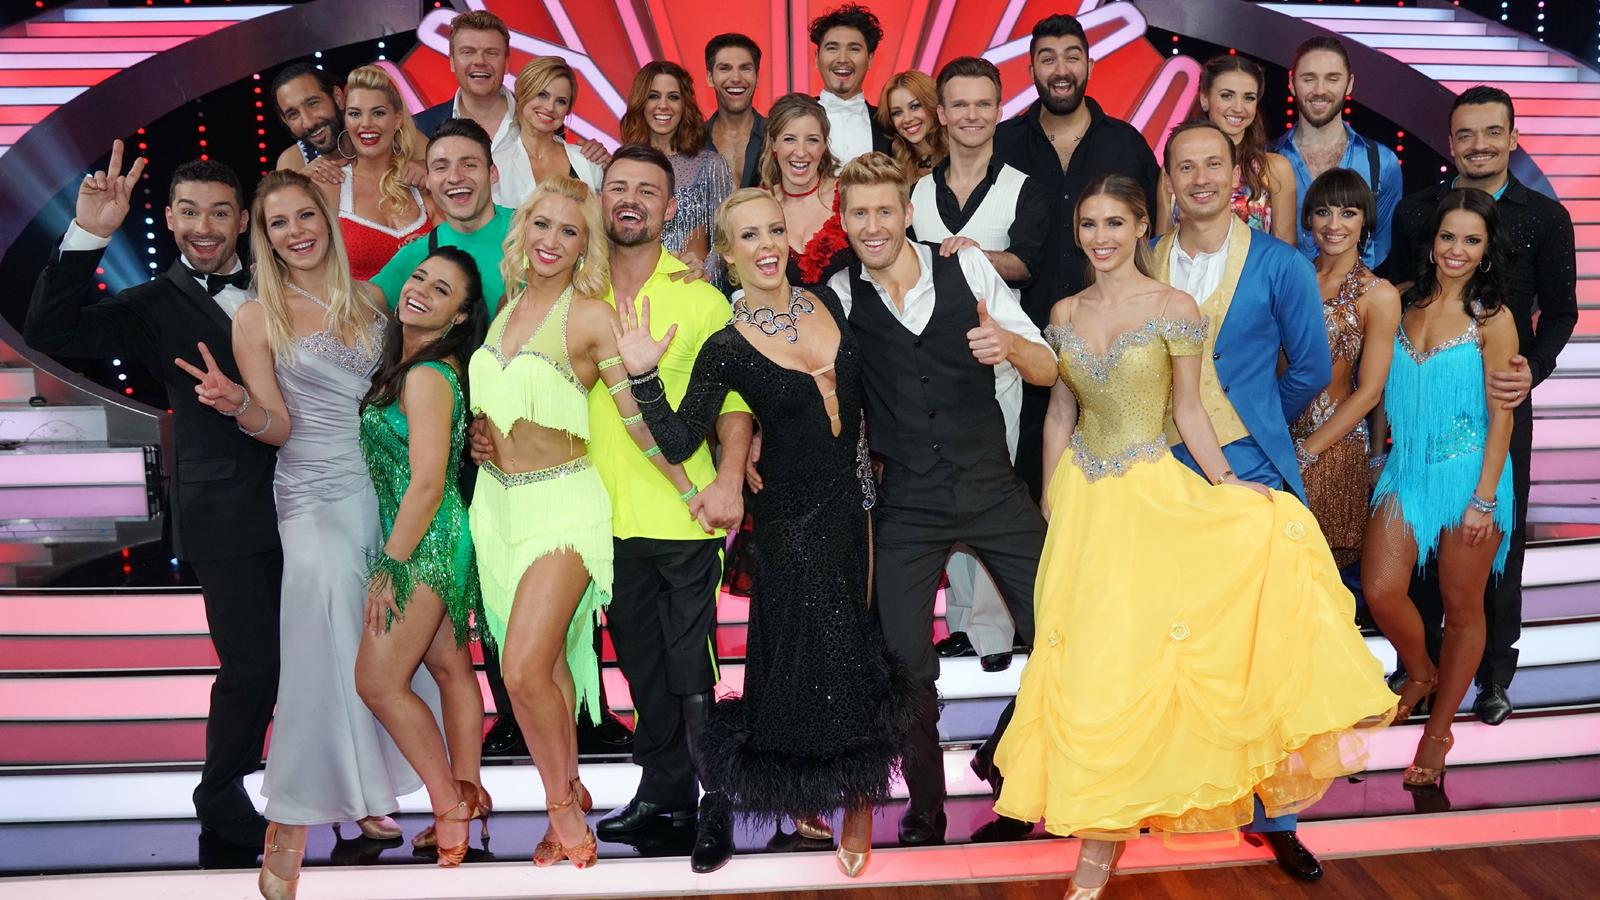 rtl now lets dance